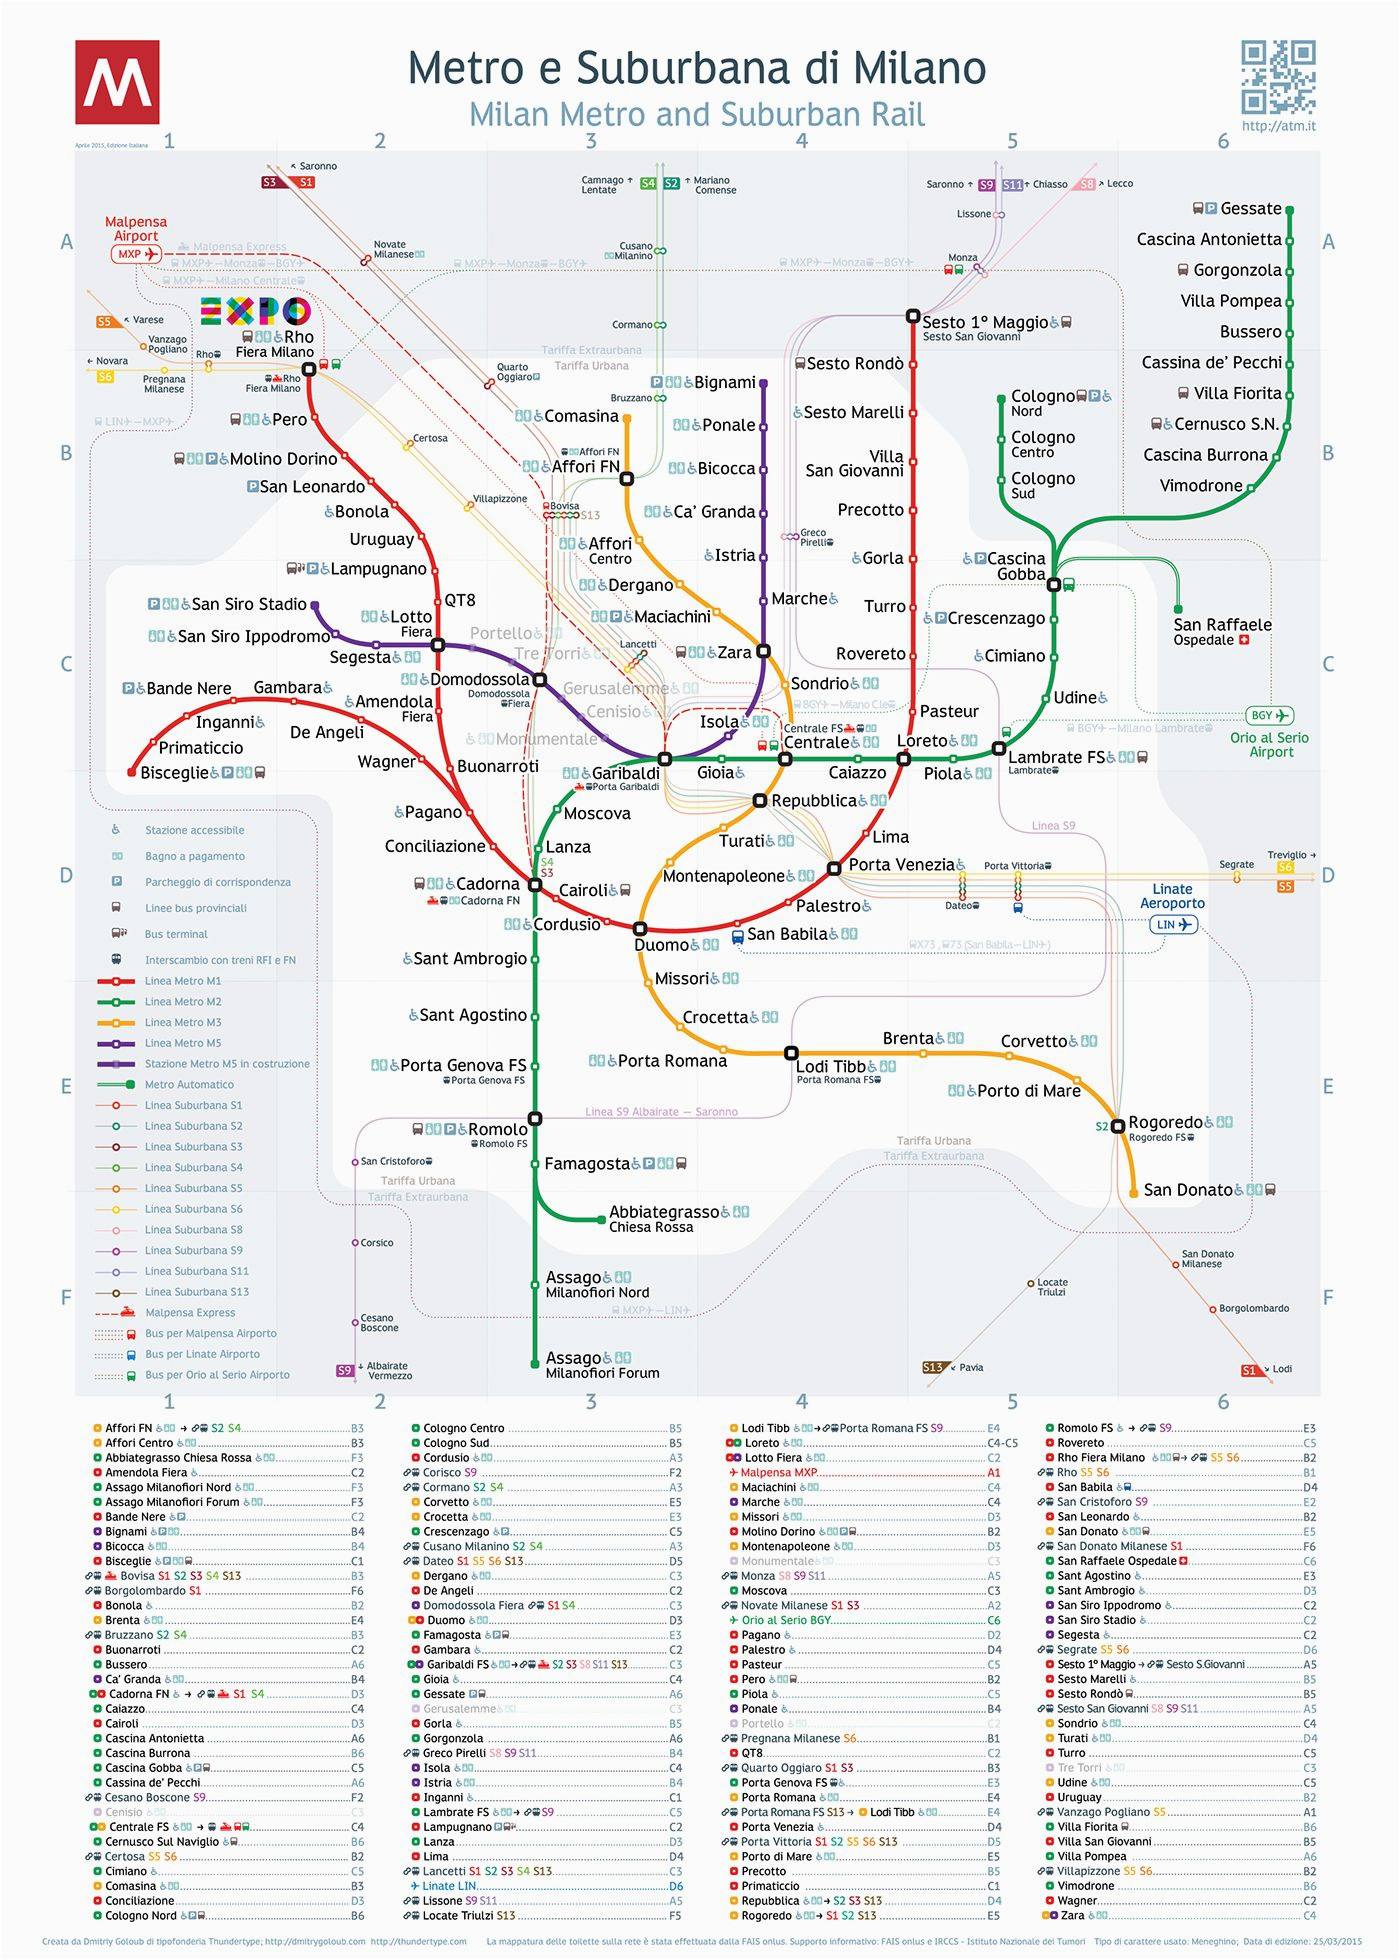 Italy Metro Map.Milan Michigan Map Milan Metro Map Transportation Pinterest Milan